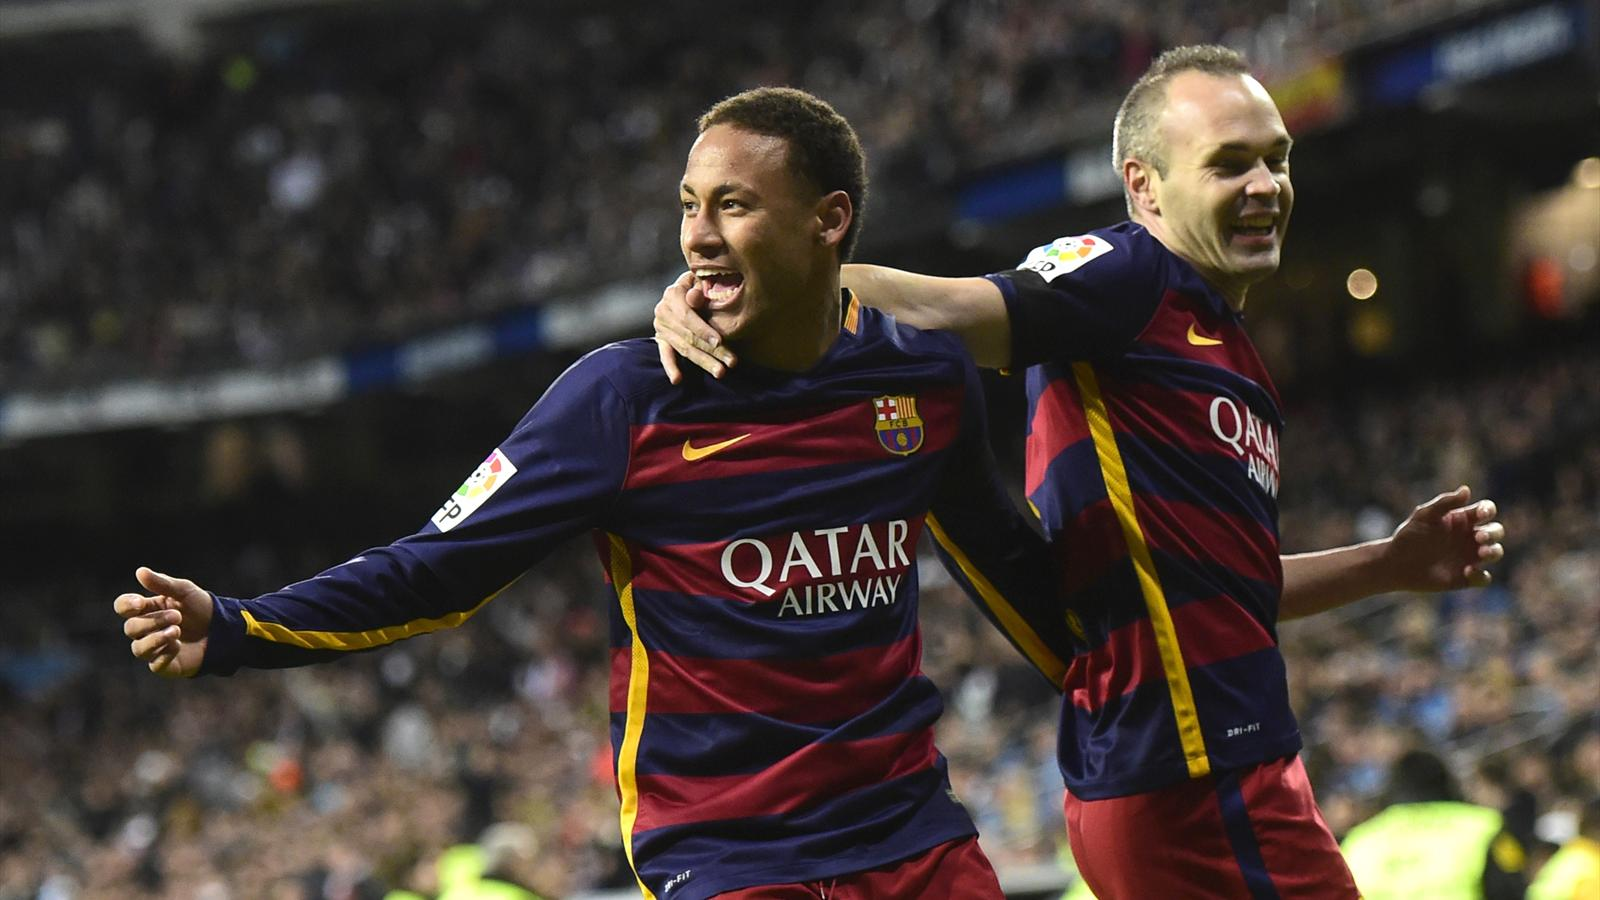 Neymar and Andres Iniesta celebrate a Barcelona goal against Real Madrid